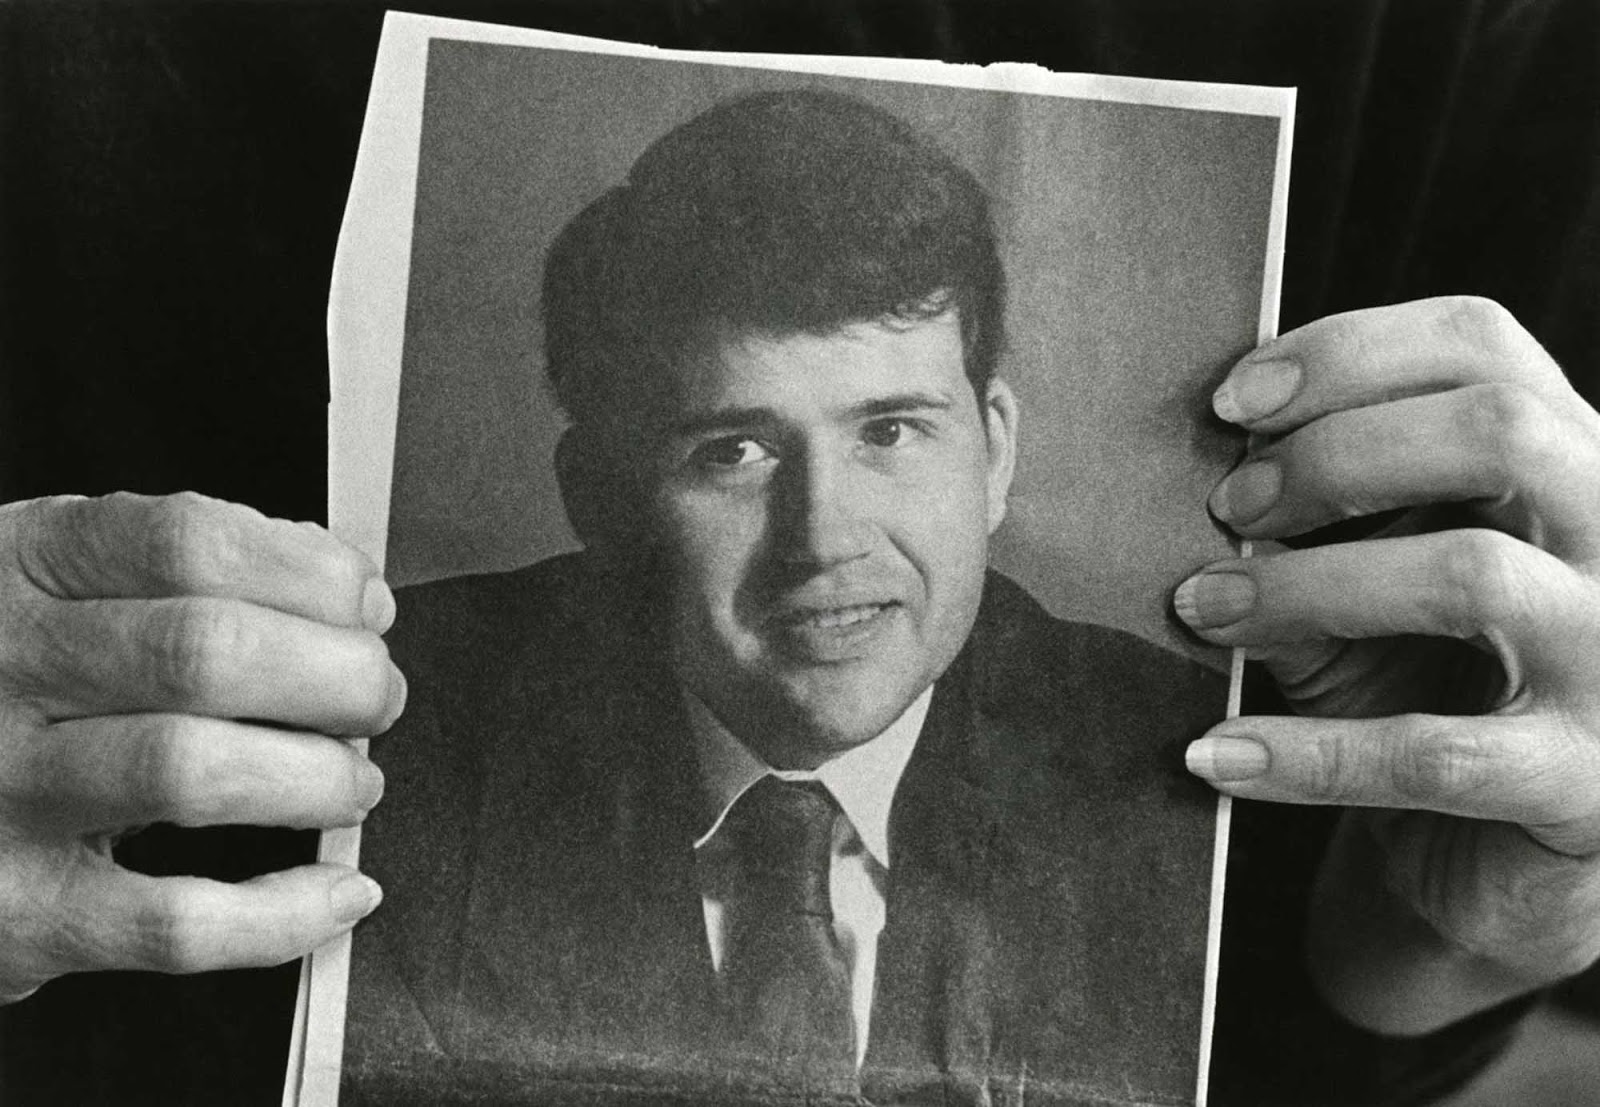 His sister shows a picture of young David Kirby.